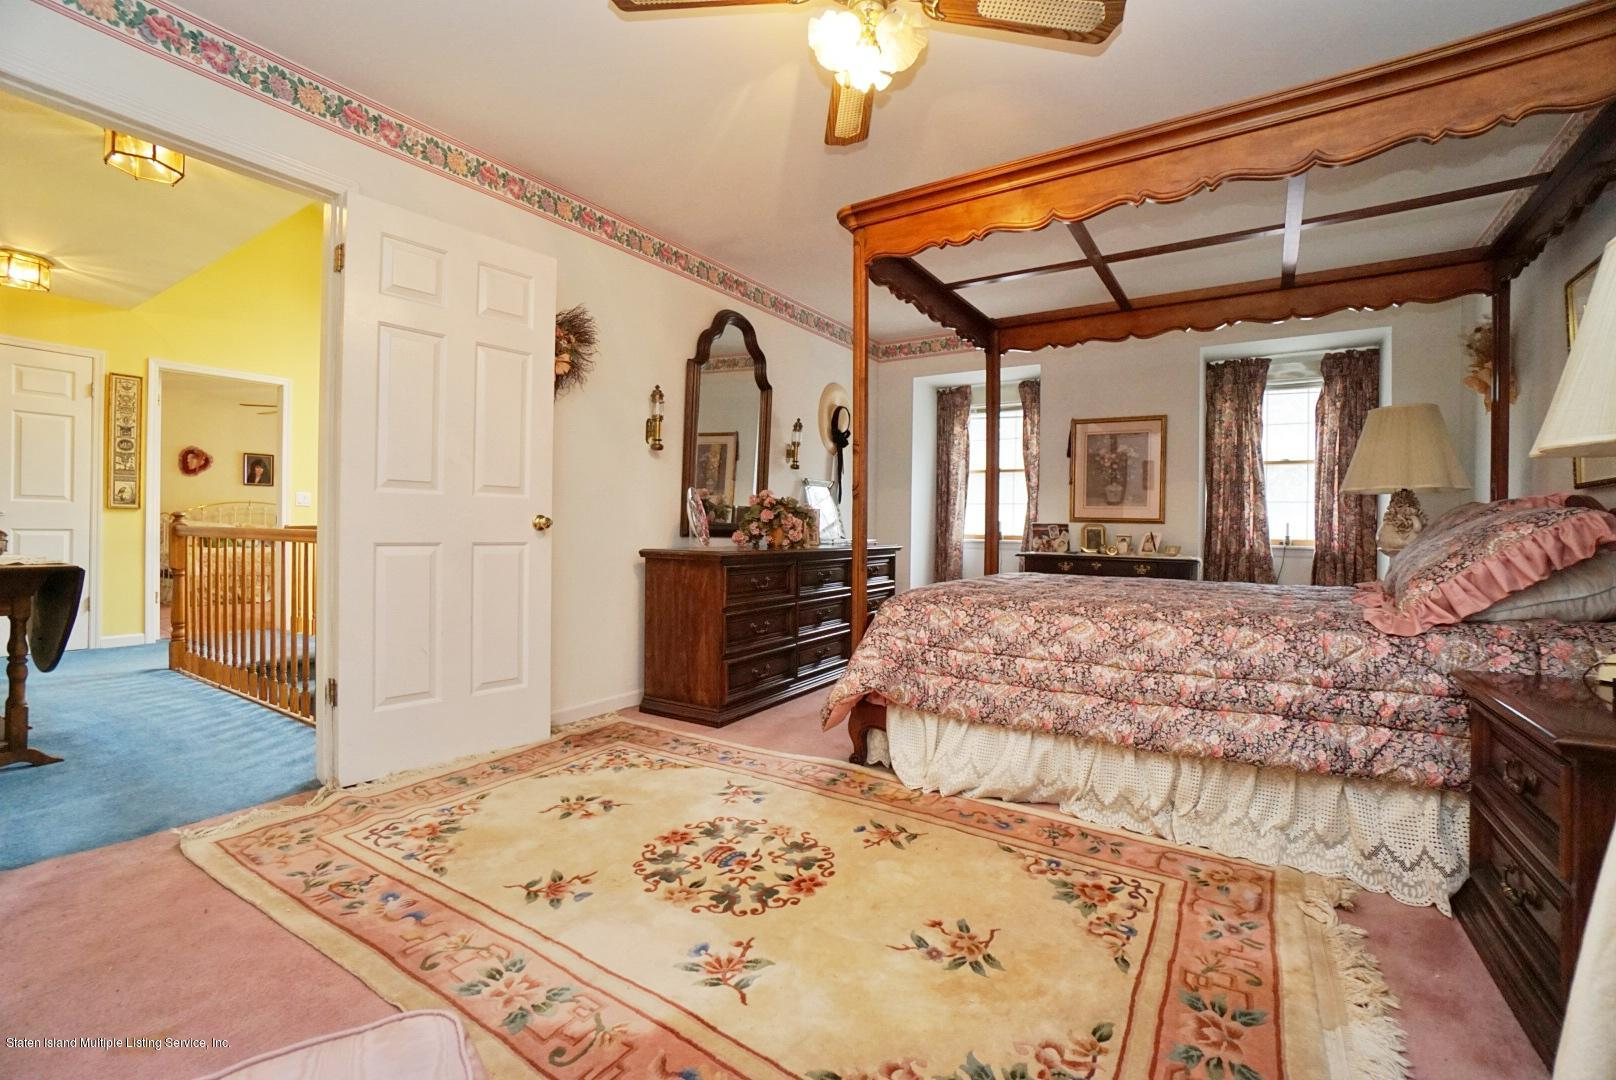 563 Caswell Avenue,Staten Island,New York,10314,United States,3 Bedrooms Bedrooms,7 Rooms Rooms,3 BathroomsBathrooms,Residential,Caswell,1133924